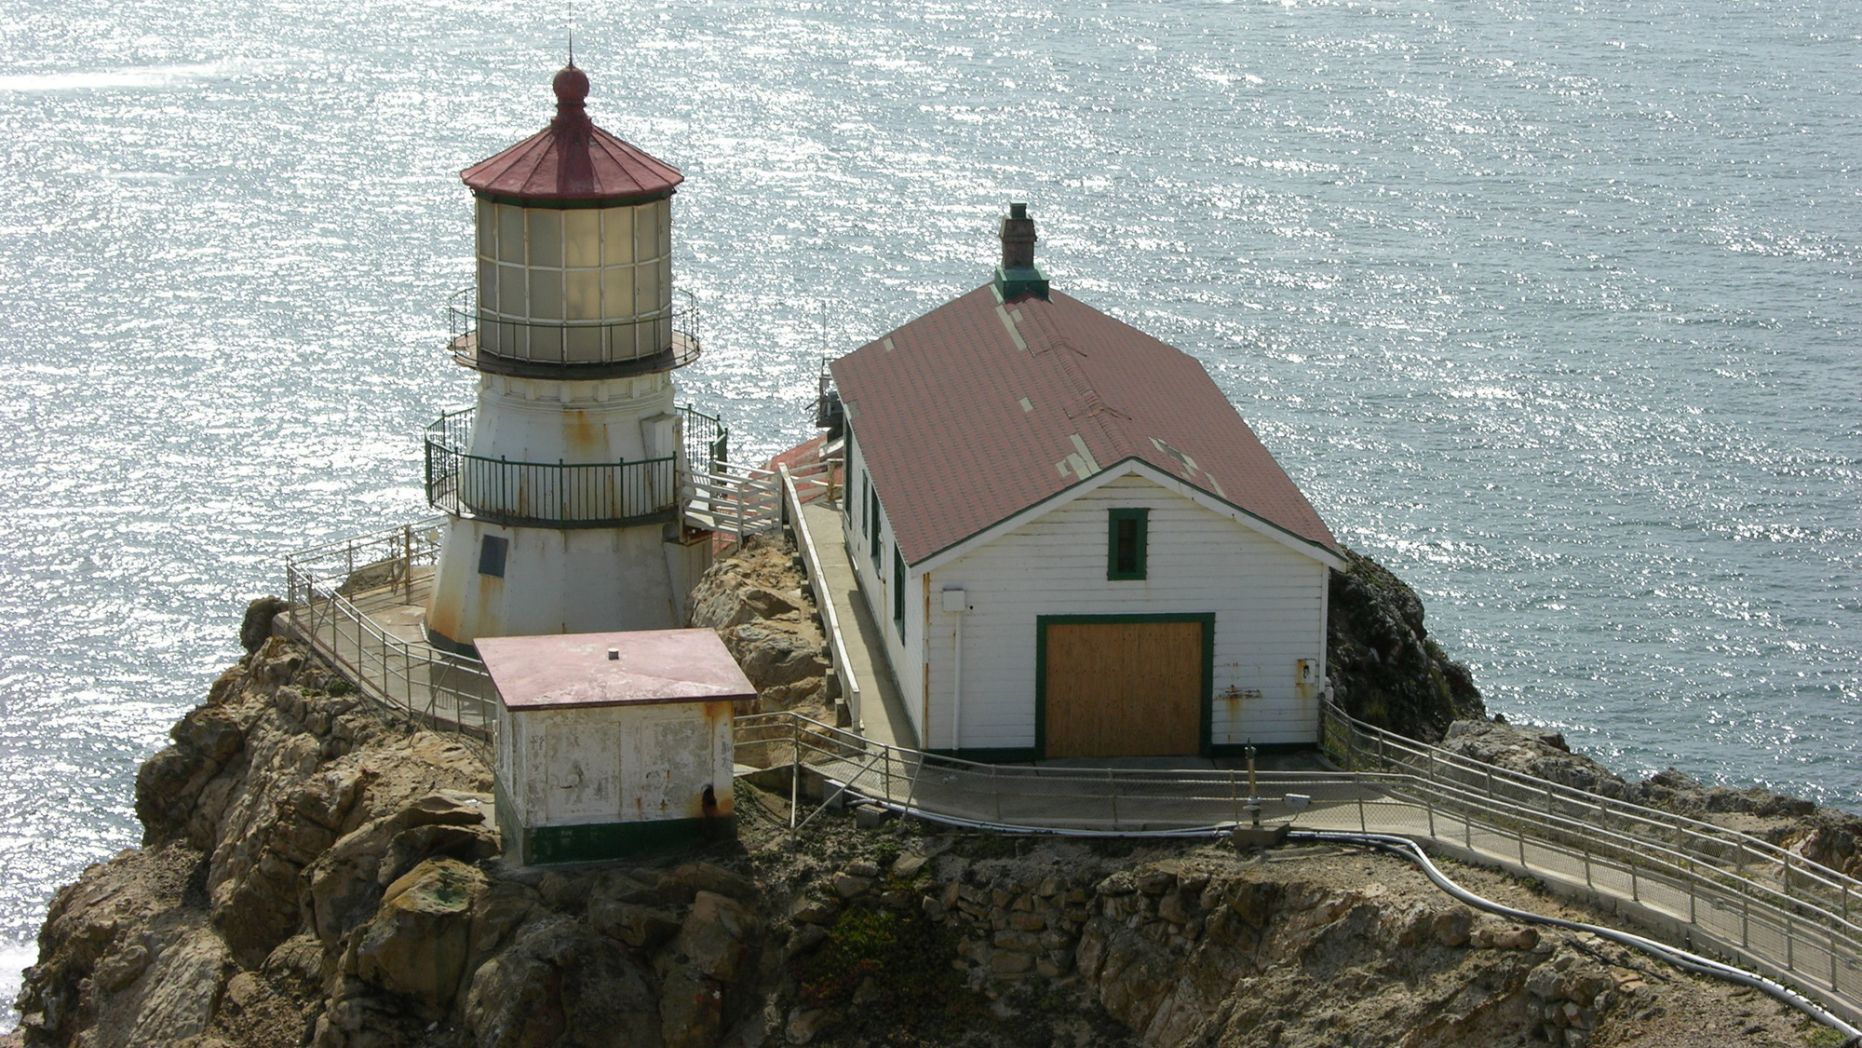 Construction workers found a time capsule hidden behind a wooden plank inside a wall of the Point Reyes National Lighthouse in California